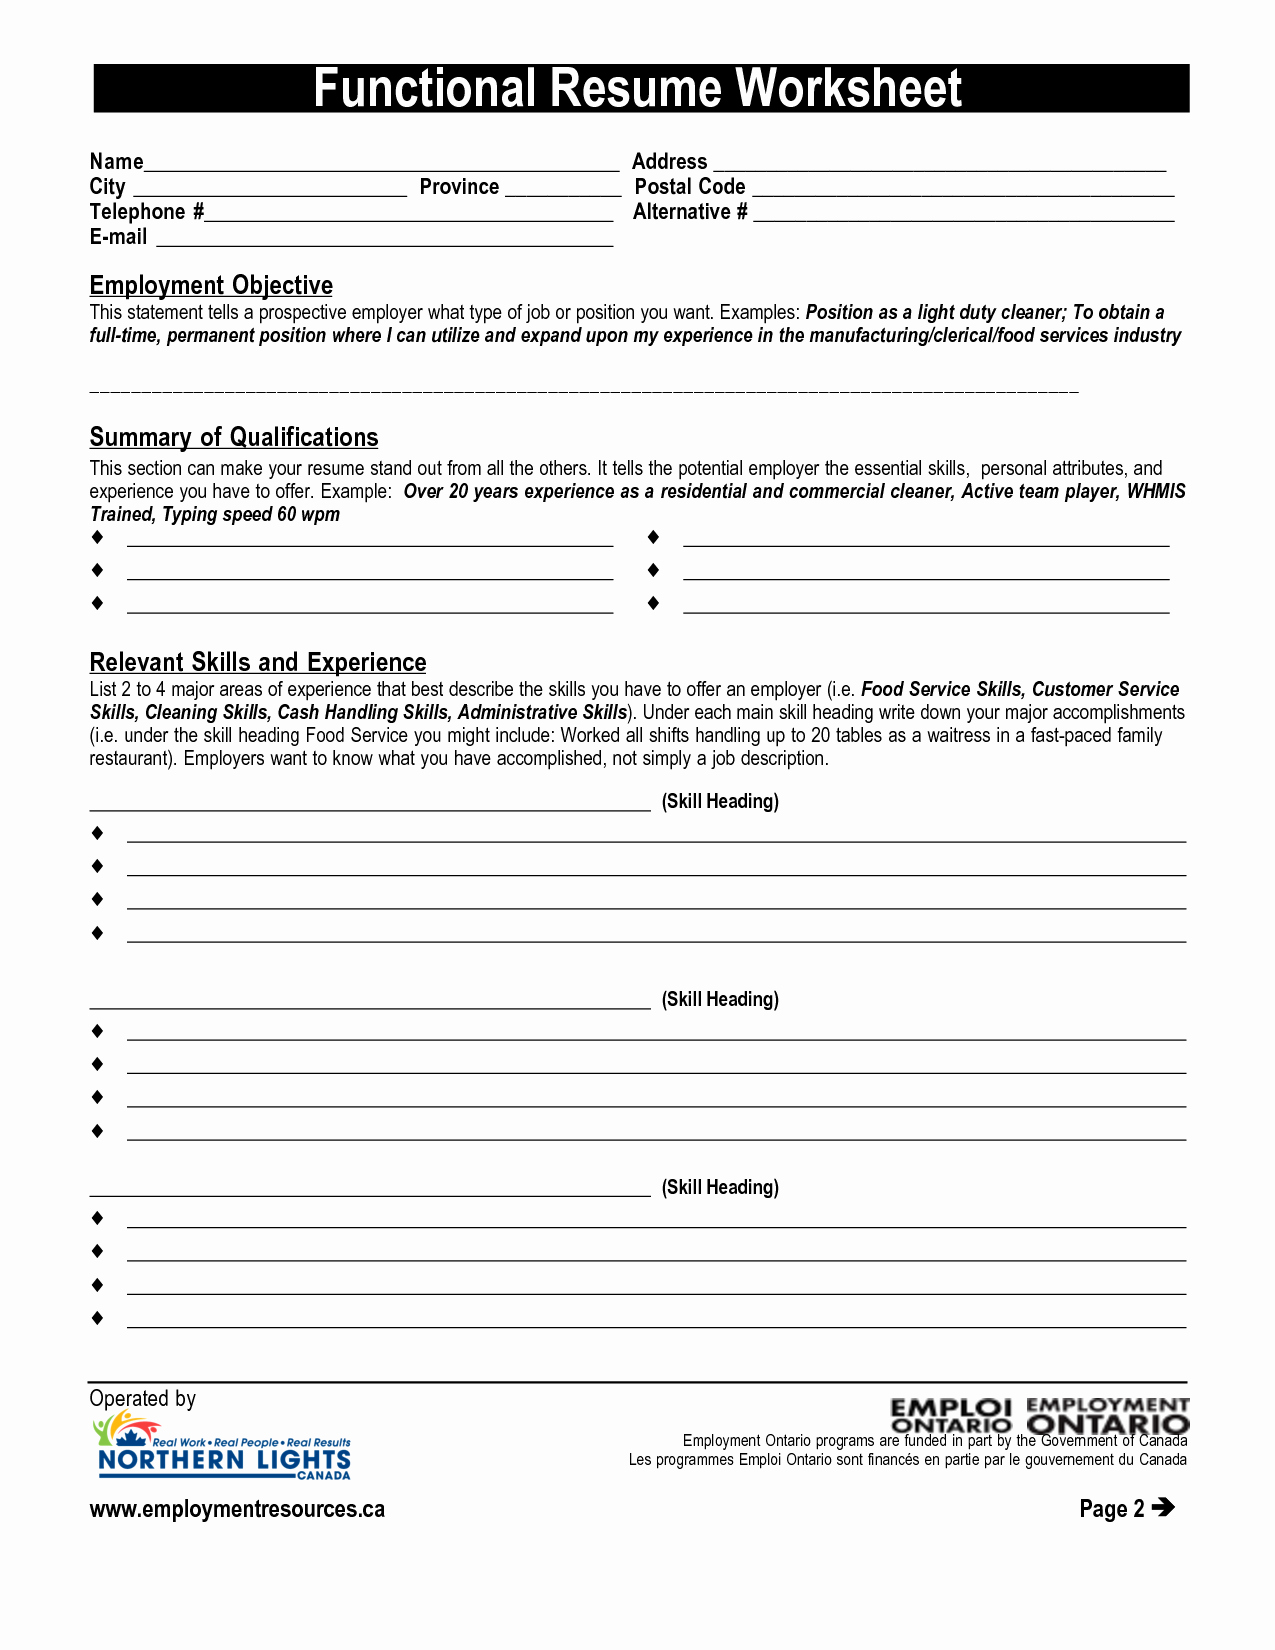 Resume Worksheet for Adults Beautiful Ministry Of Education and Training Helping with Homework